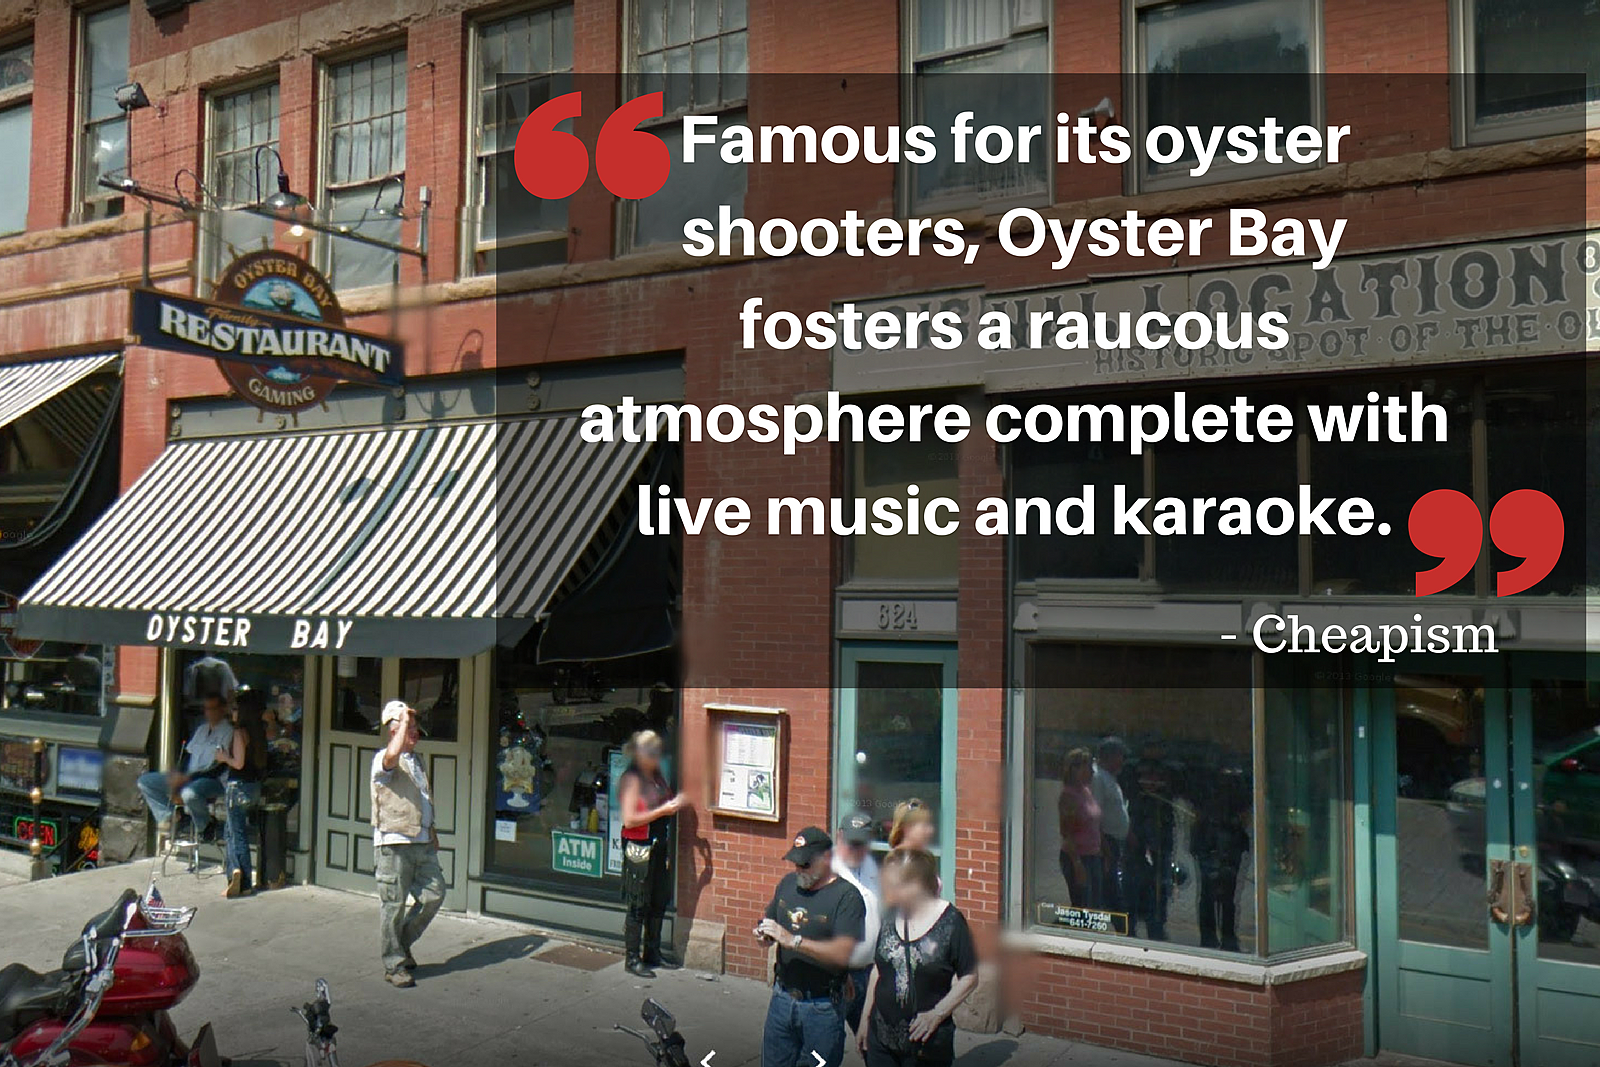 Oyster Bay Cheapism Quote